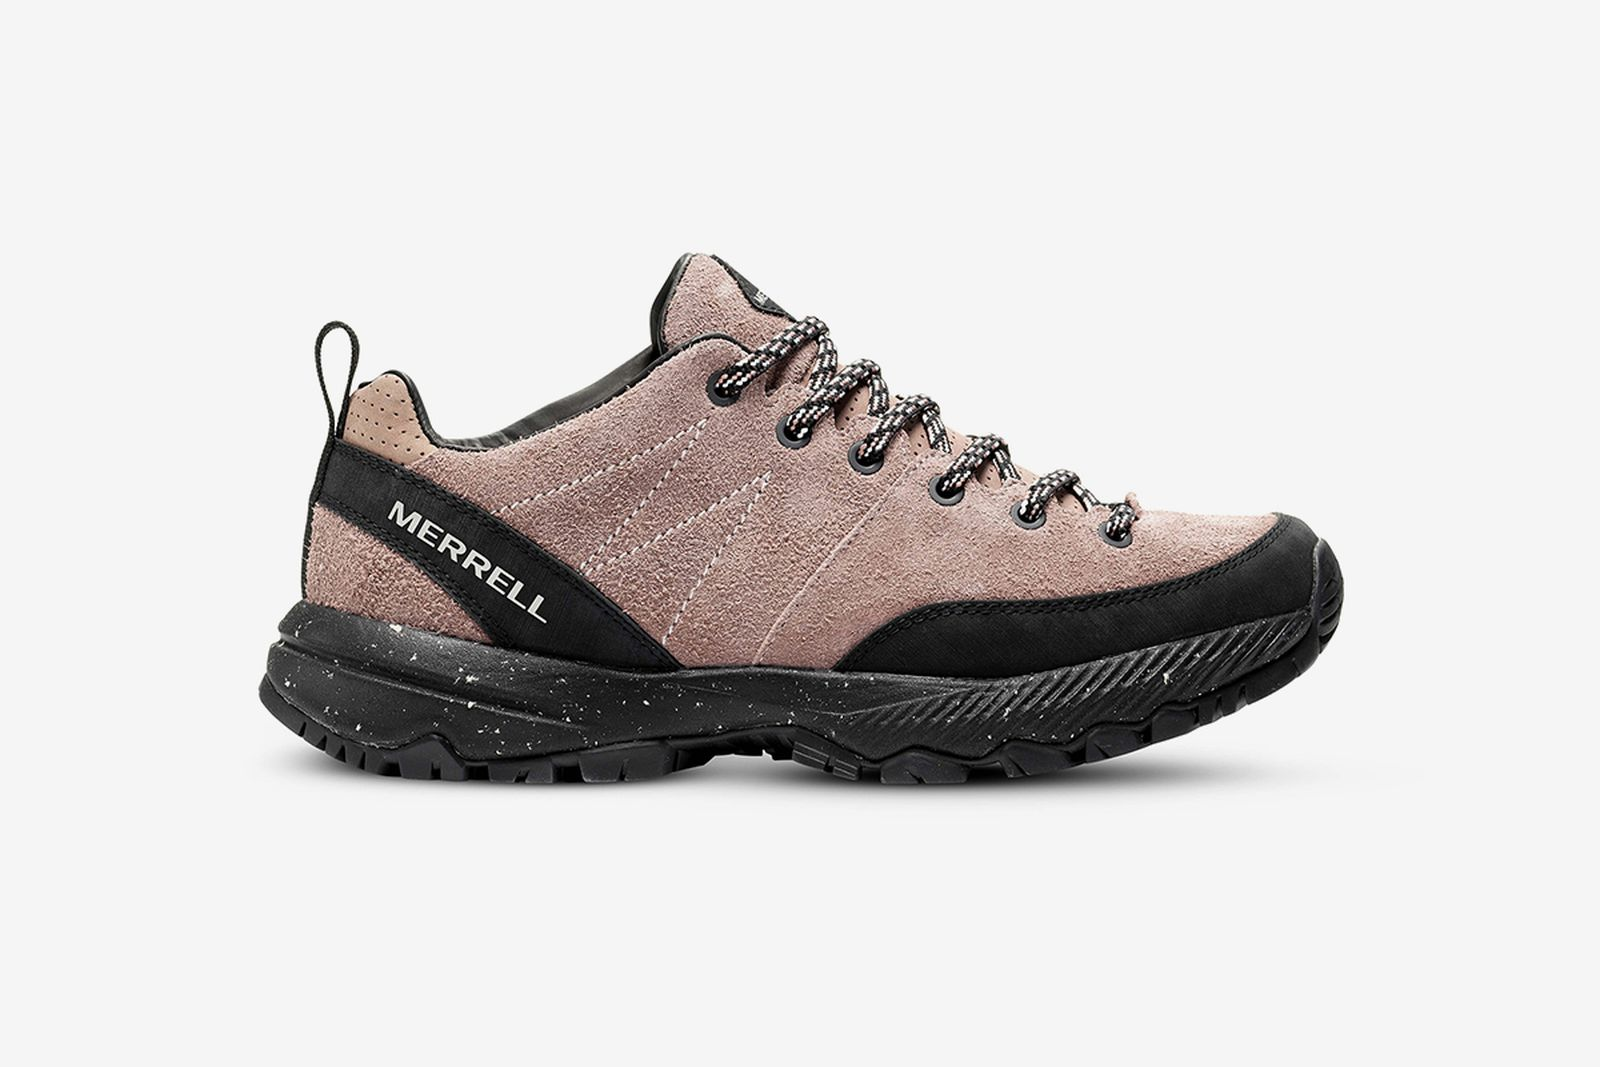 merrell-ss21-1trl-collection-07